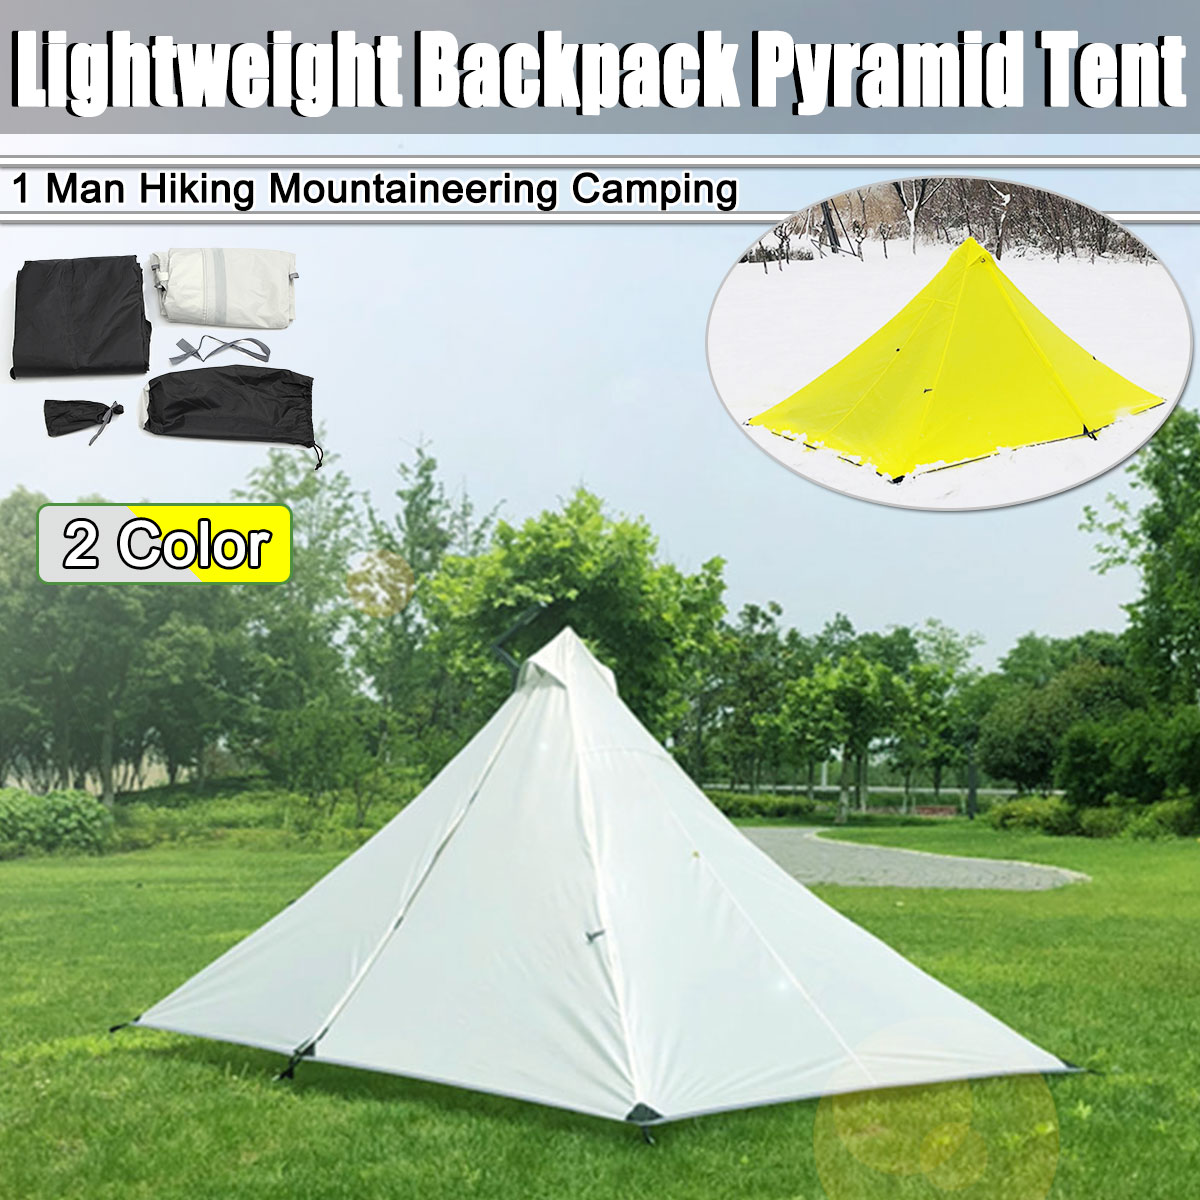 Outdoor Portable Waterproof Backpacking Tent for 1 Person Hiking Camping Fishing Ultralight Camping Tent 210T Top PolyesterOutdoor Portable Waterproof Backpacking Tent for 1 Person Hiking Camping Fishing Ultralight Camping Tent 210T Top Polyester